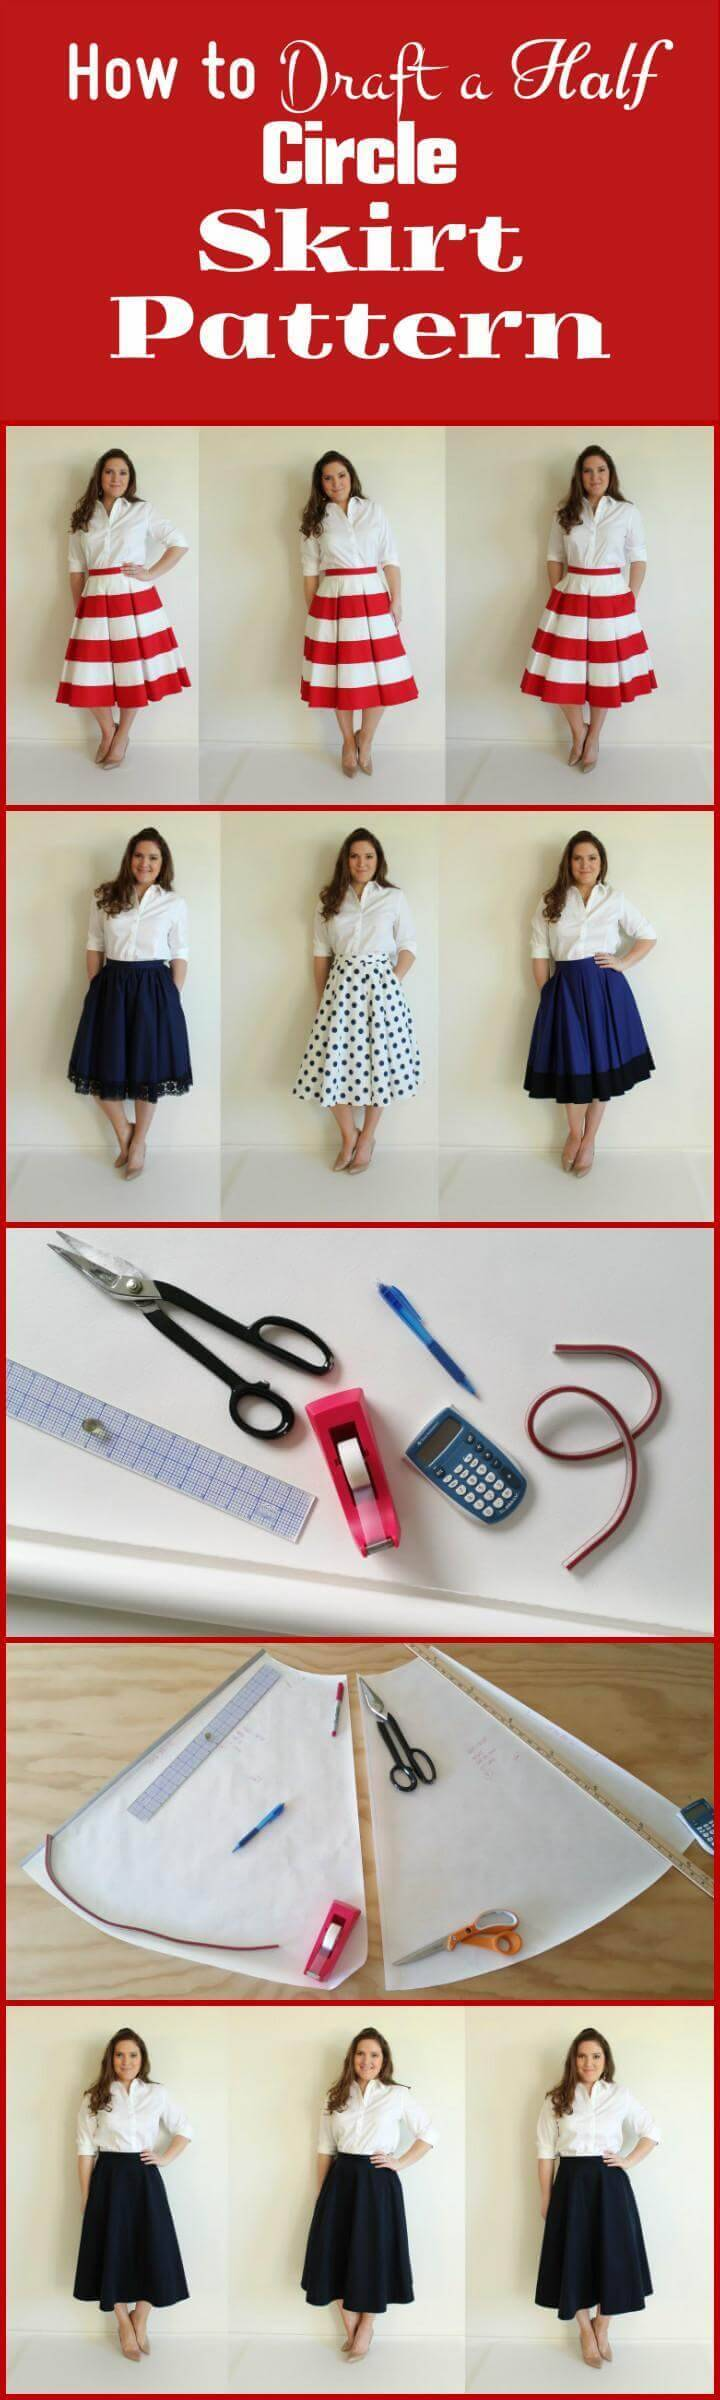 DIY how to draft a half circle skirt